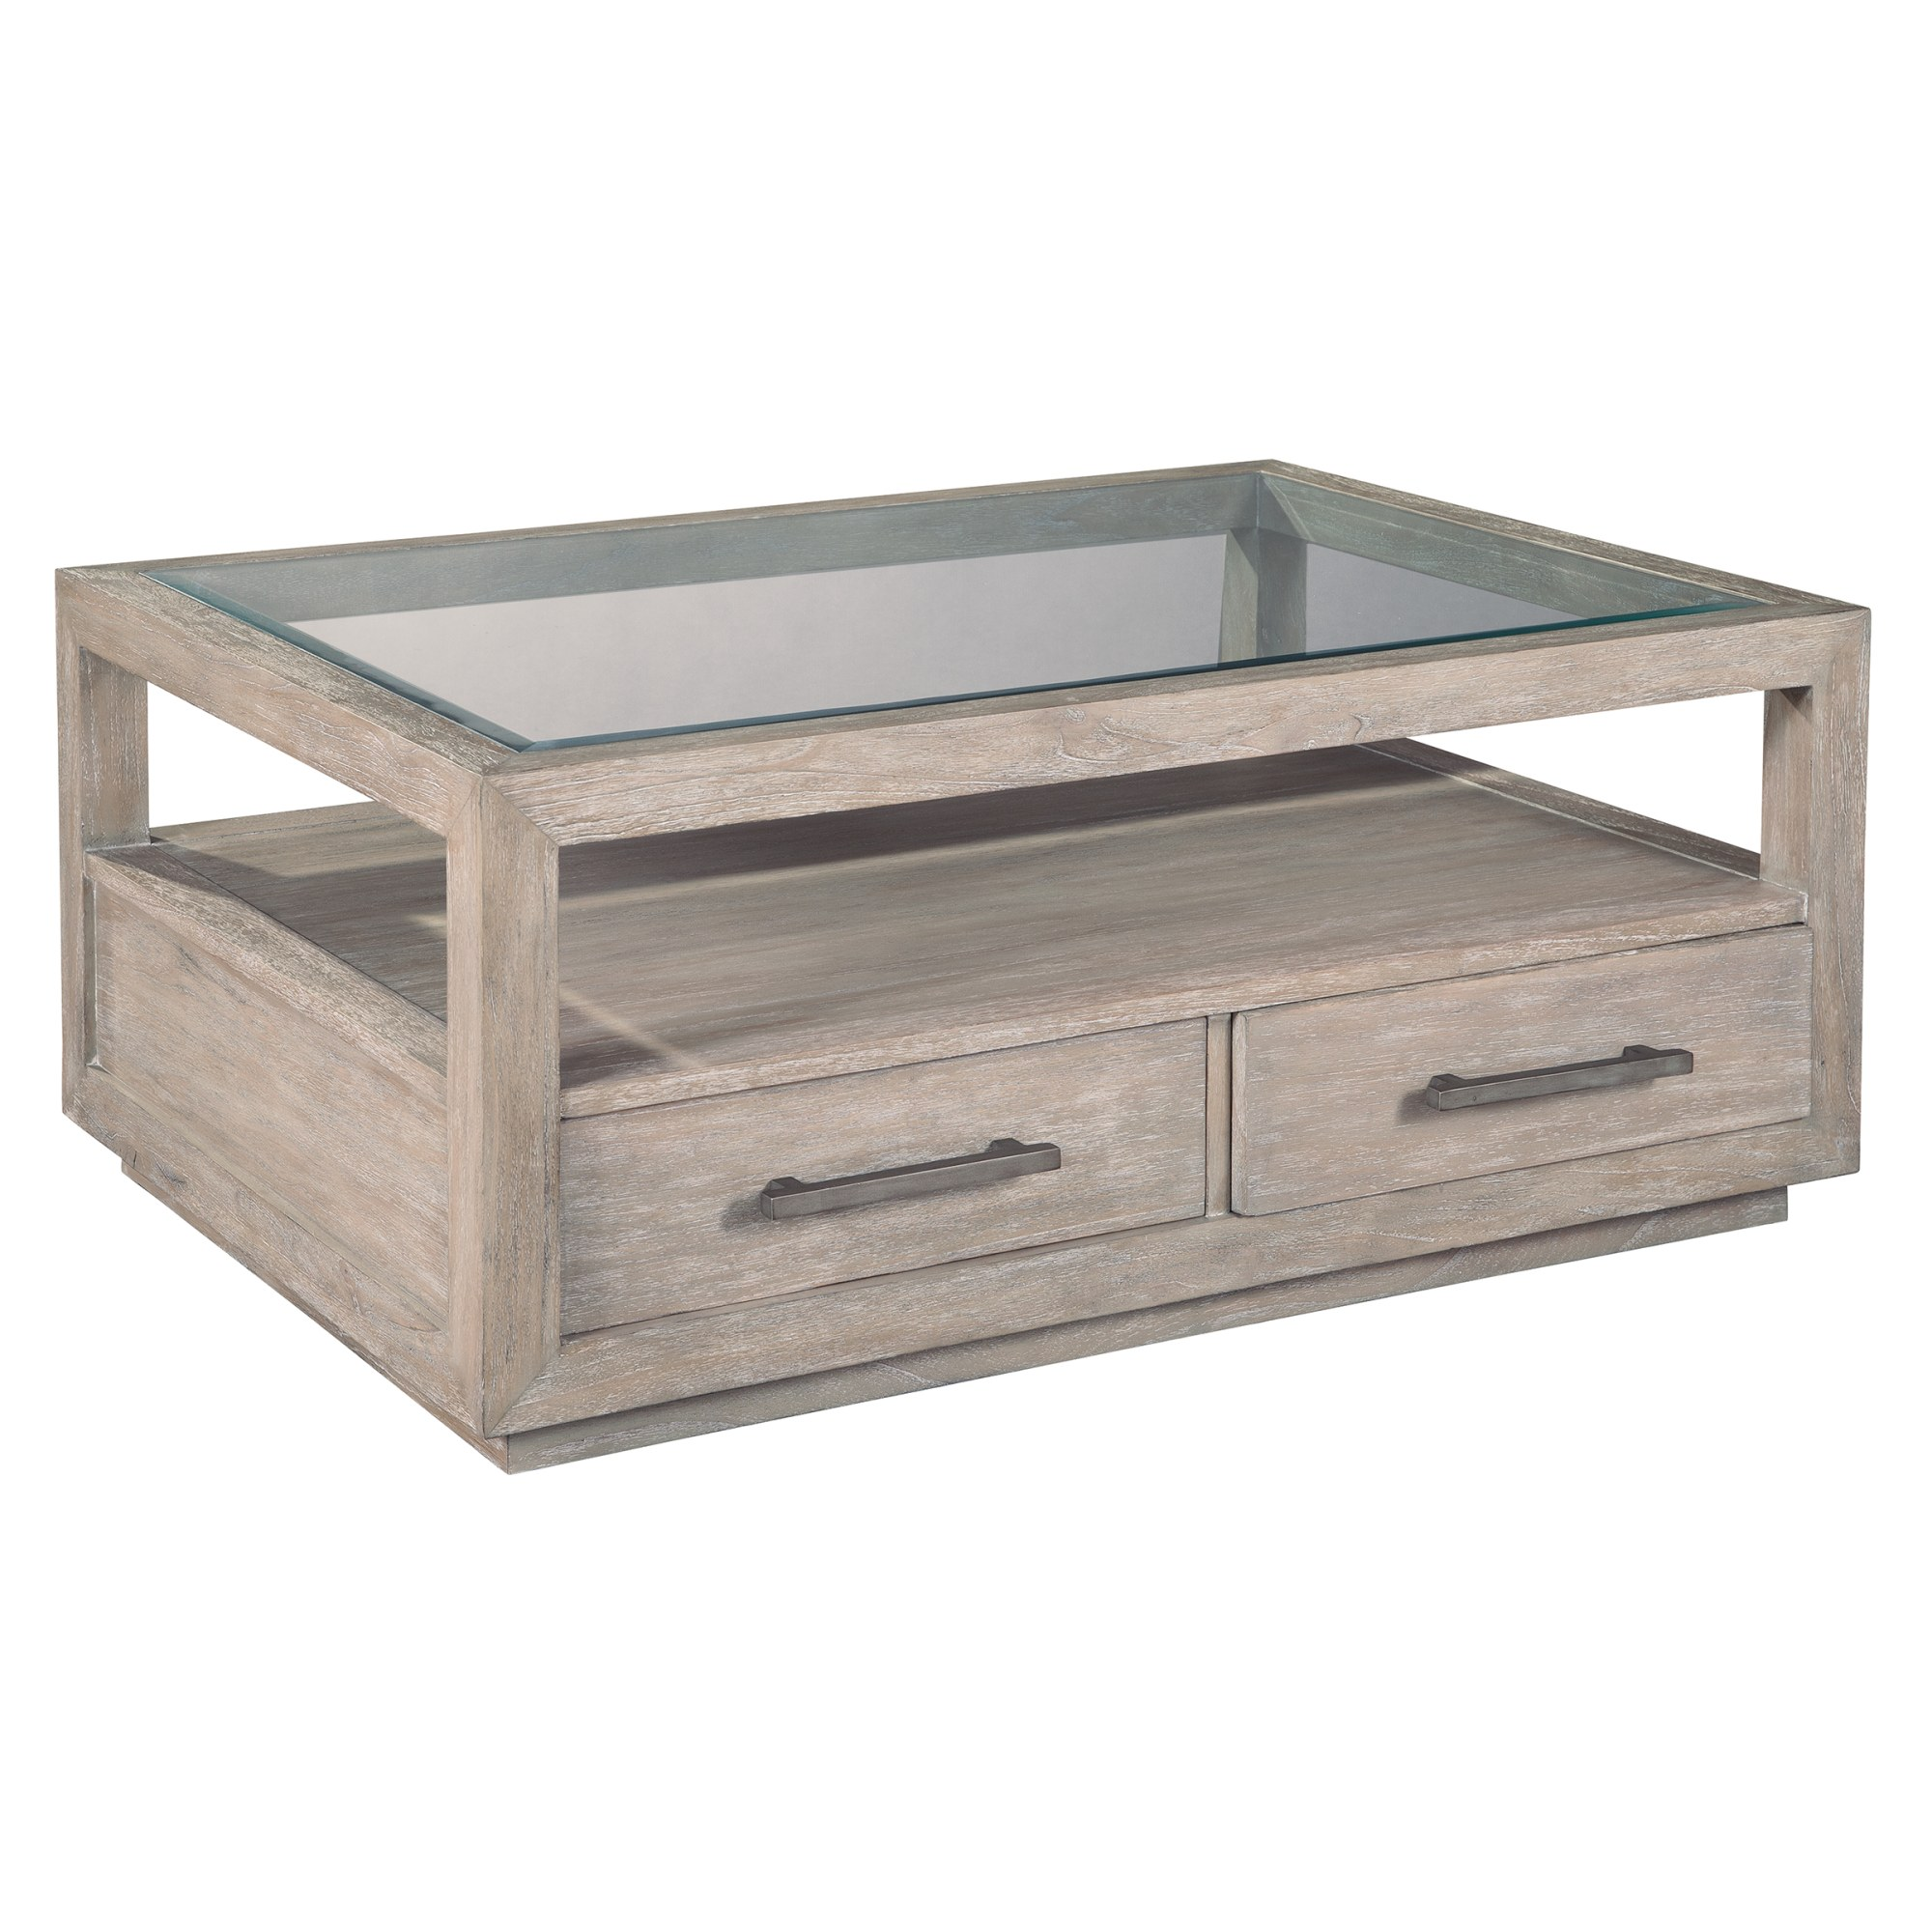 Image for 1-7101 Berkeley Heights Rectangular Glass Top Coffee Table from Hekman Official Website